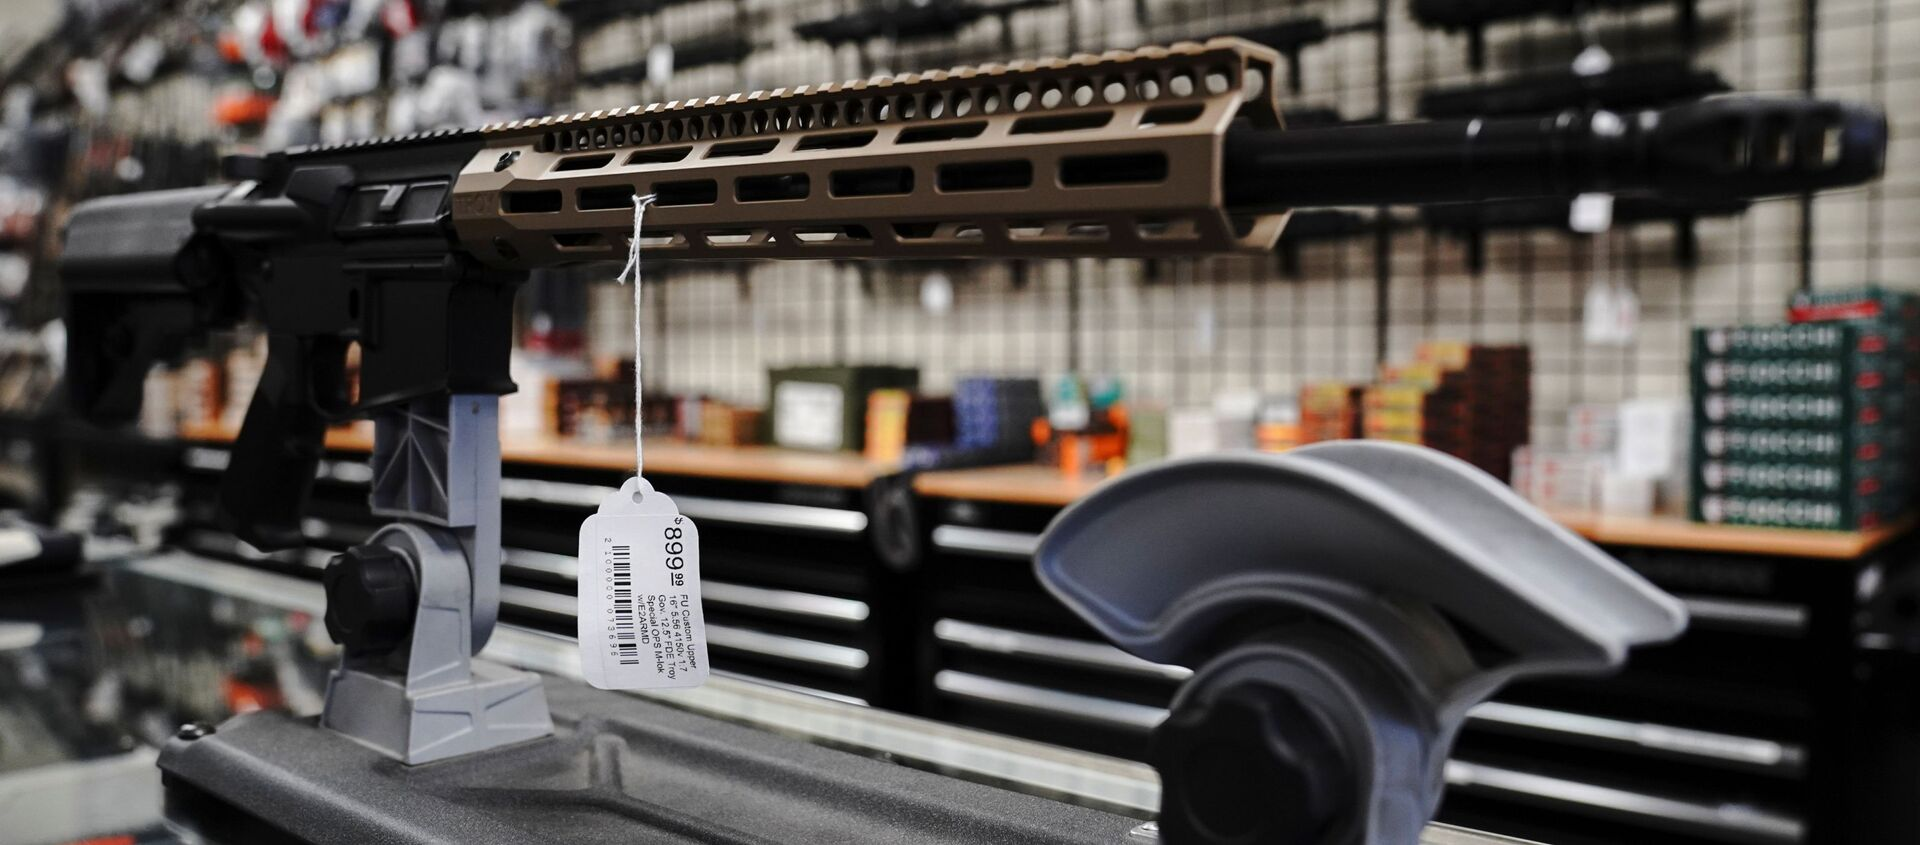 An FU custom upper receiver for an AR-15 style rifle is displayed for sale at Firearms Unknown, a gun store in Oceanside, California, U.S., April 12, 2021.  REUTERS/Bing Guan - Sputnik International, 1920, 22.07.2021